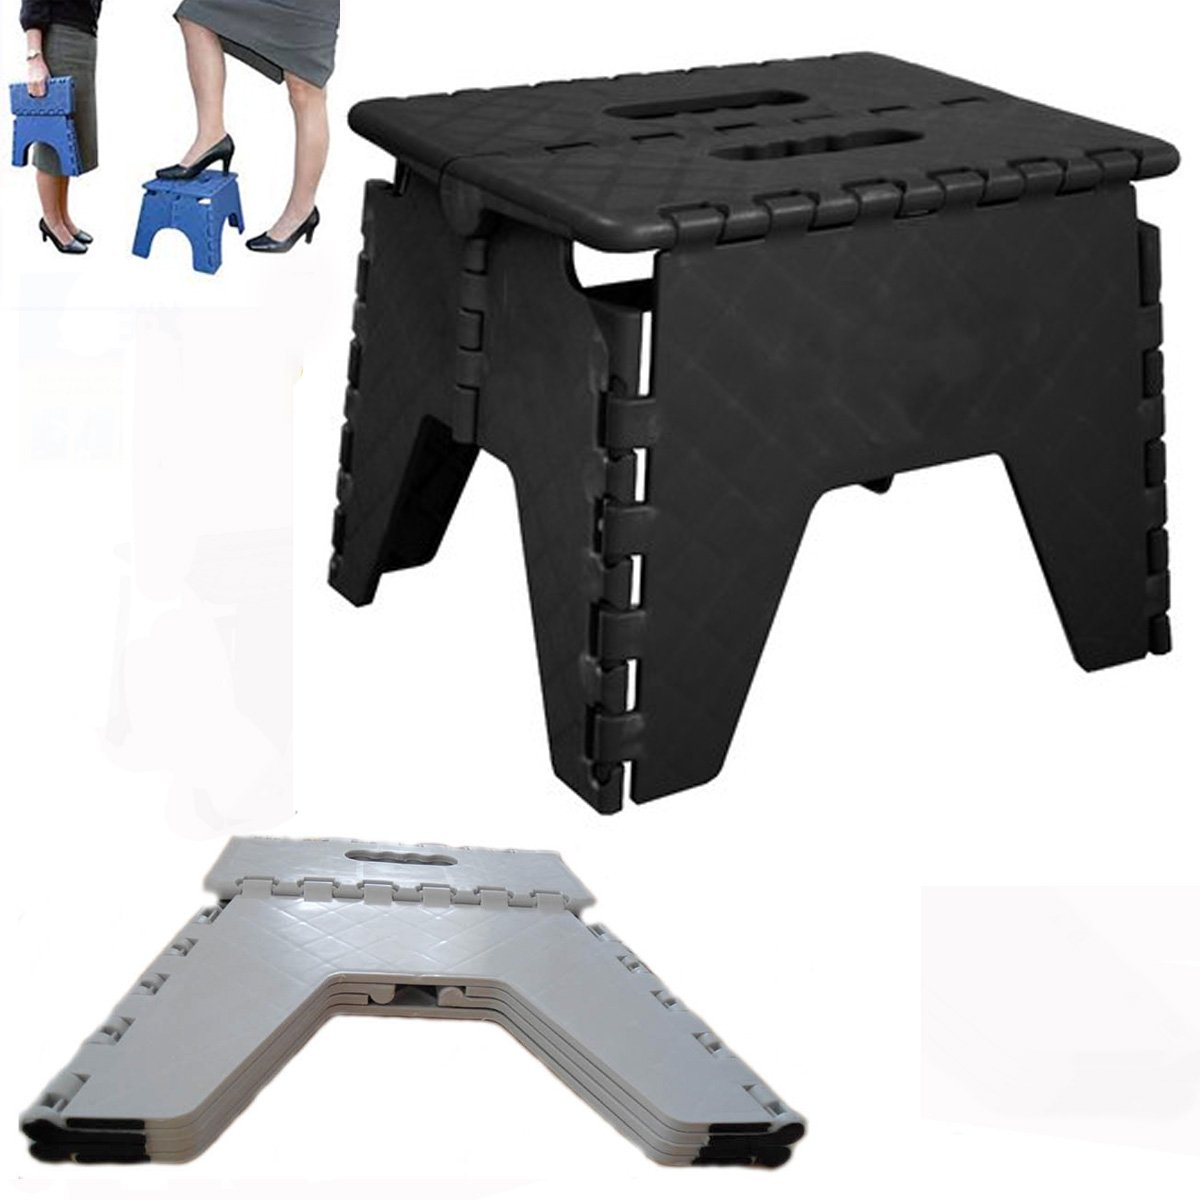 Folding Step Stool Plastic Foldable Heavy Duty Small Stool Easy Store Handy Chair